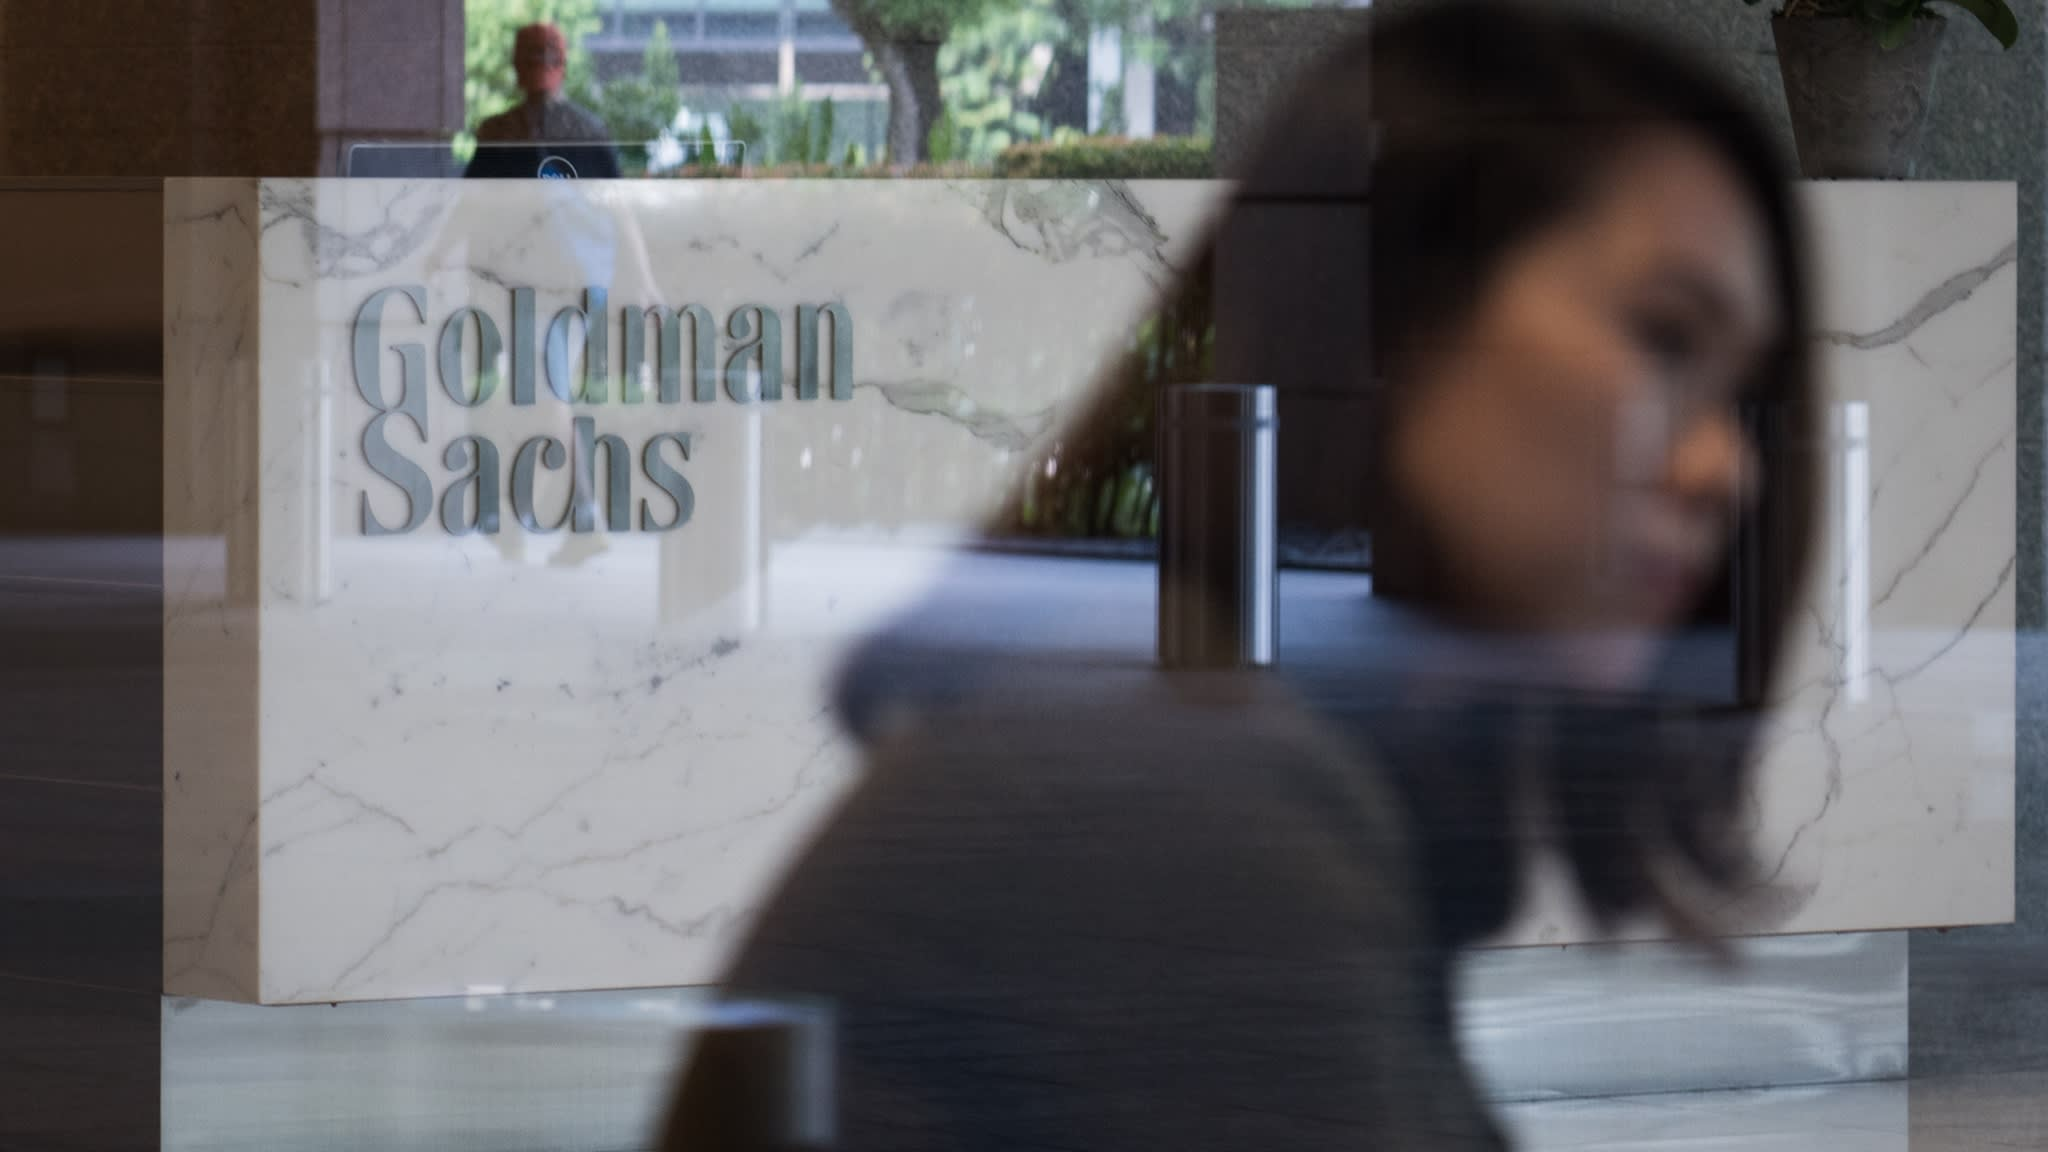 Abu Dhabi sovereign fund halts business with Goldman Sachs | Financial Times